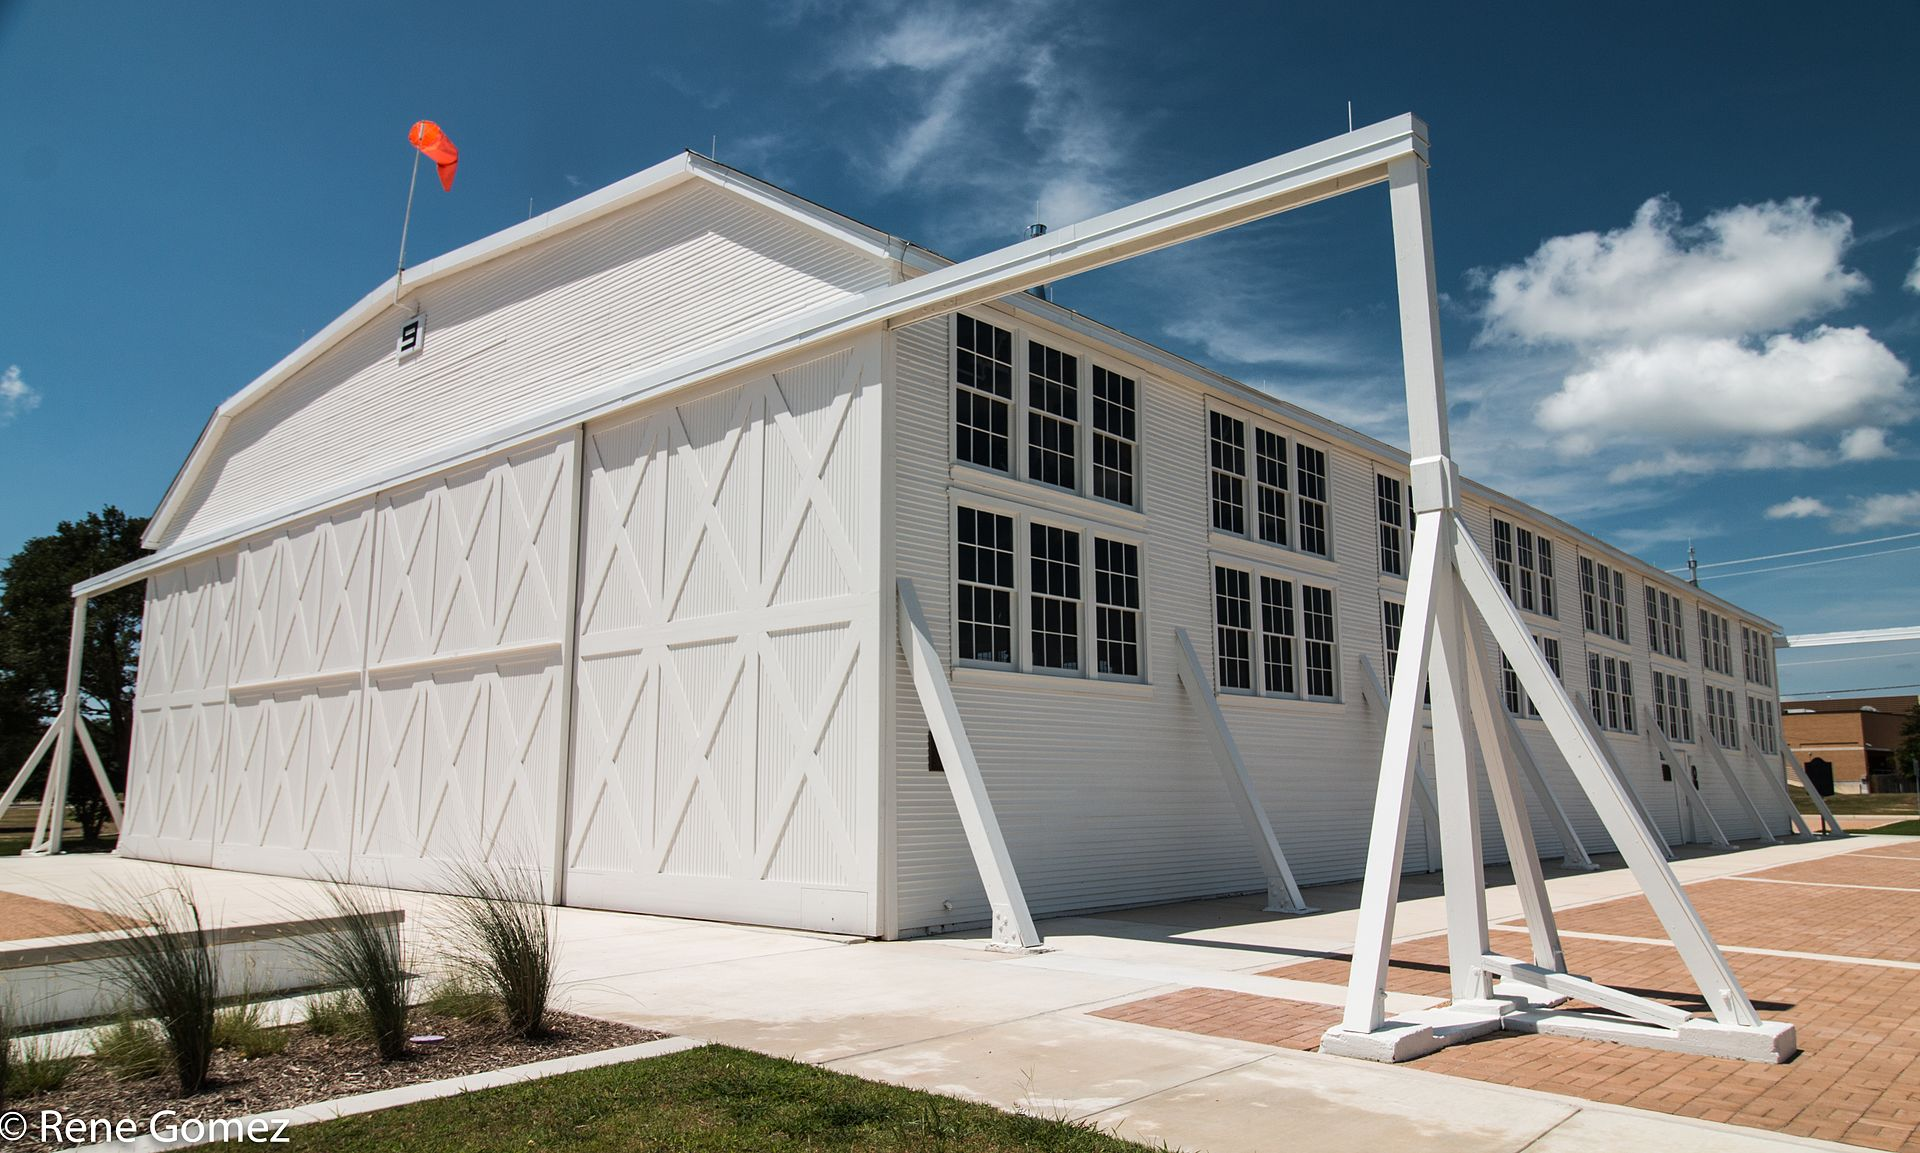 Built in 1918, Hangar 9 is the last surviving WWI hangar in the country.